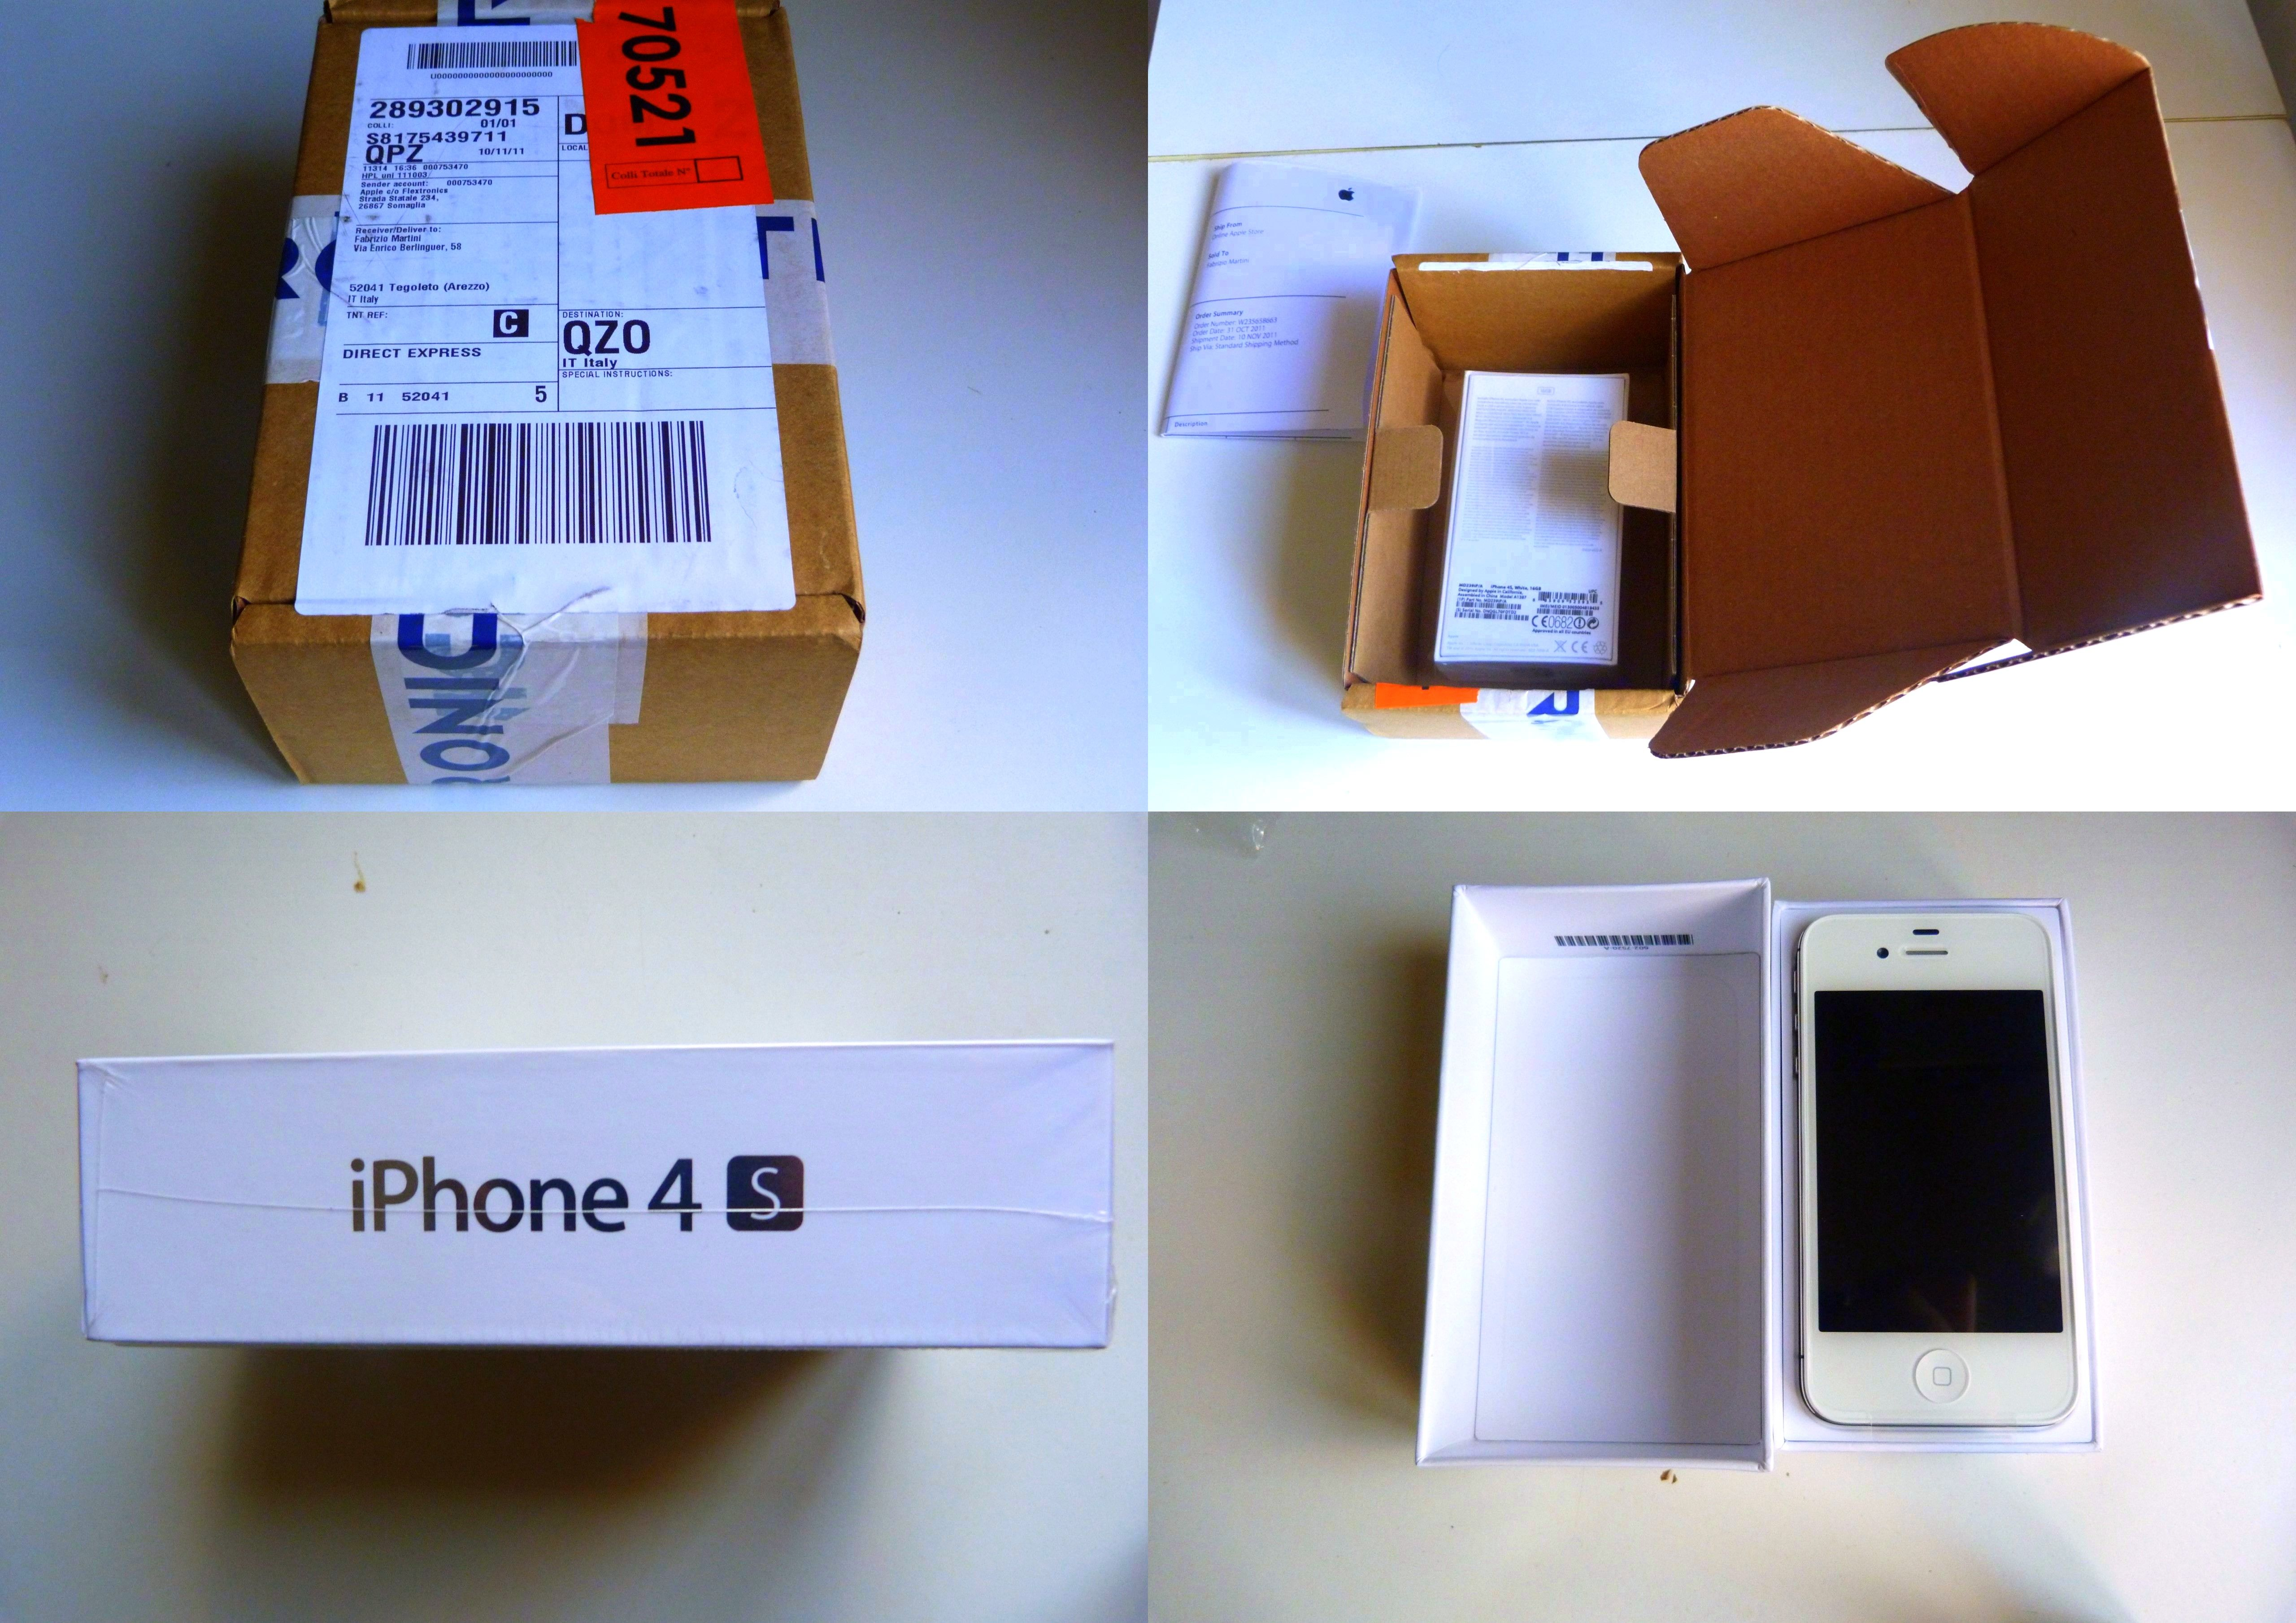 iPhone 4S UNBOXING | It's me: strengths and weaknesses